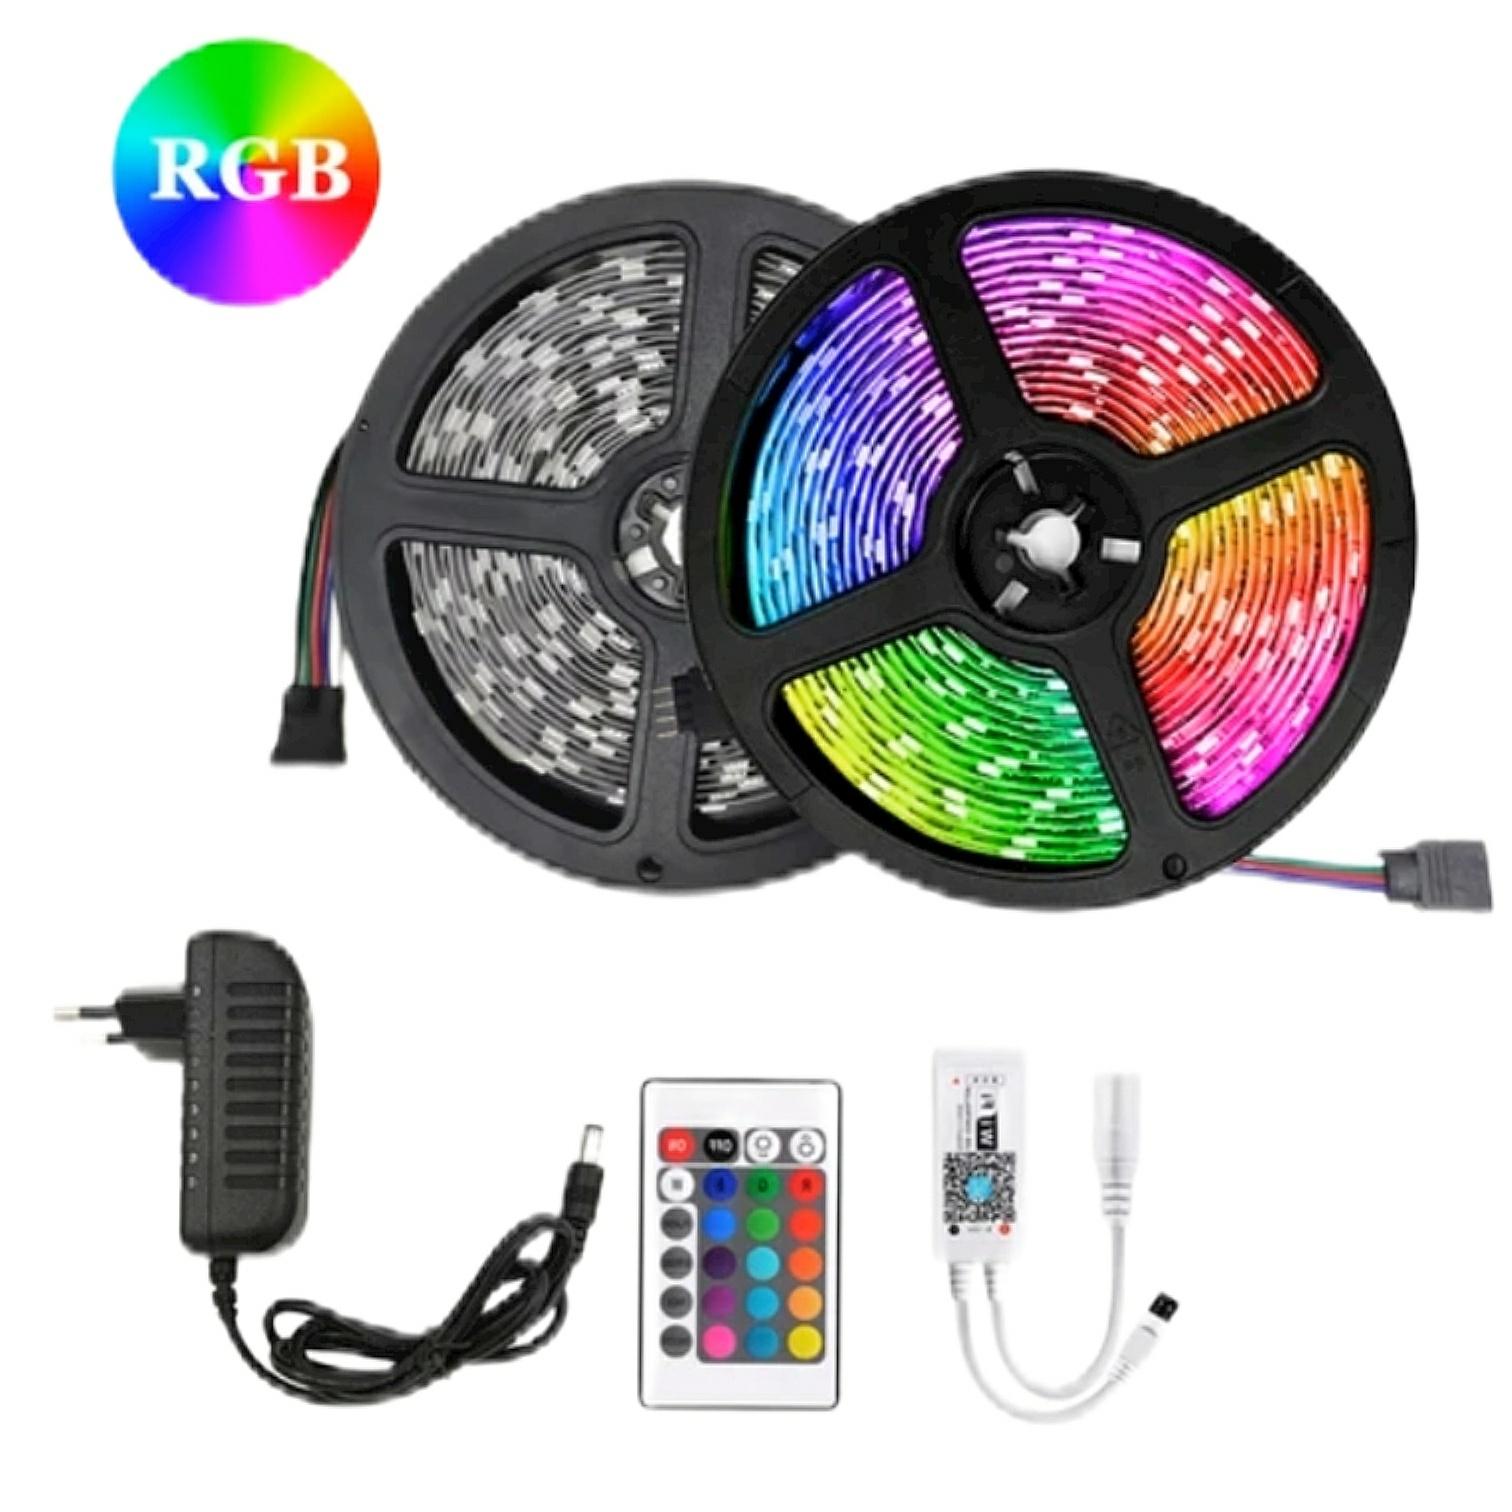 RGB LED Strip Light, Remote Control RGB LED Strip Light, 3528 LED Strip Light, Waterproof IP65 RGB SMD LED Light with Complete Kit for Home, Room, Wall, TV, Computer Table, Home Decoration, Ceiling, Bed Room, Interior, Gaming Setup | Home-Assistant